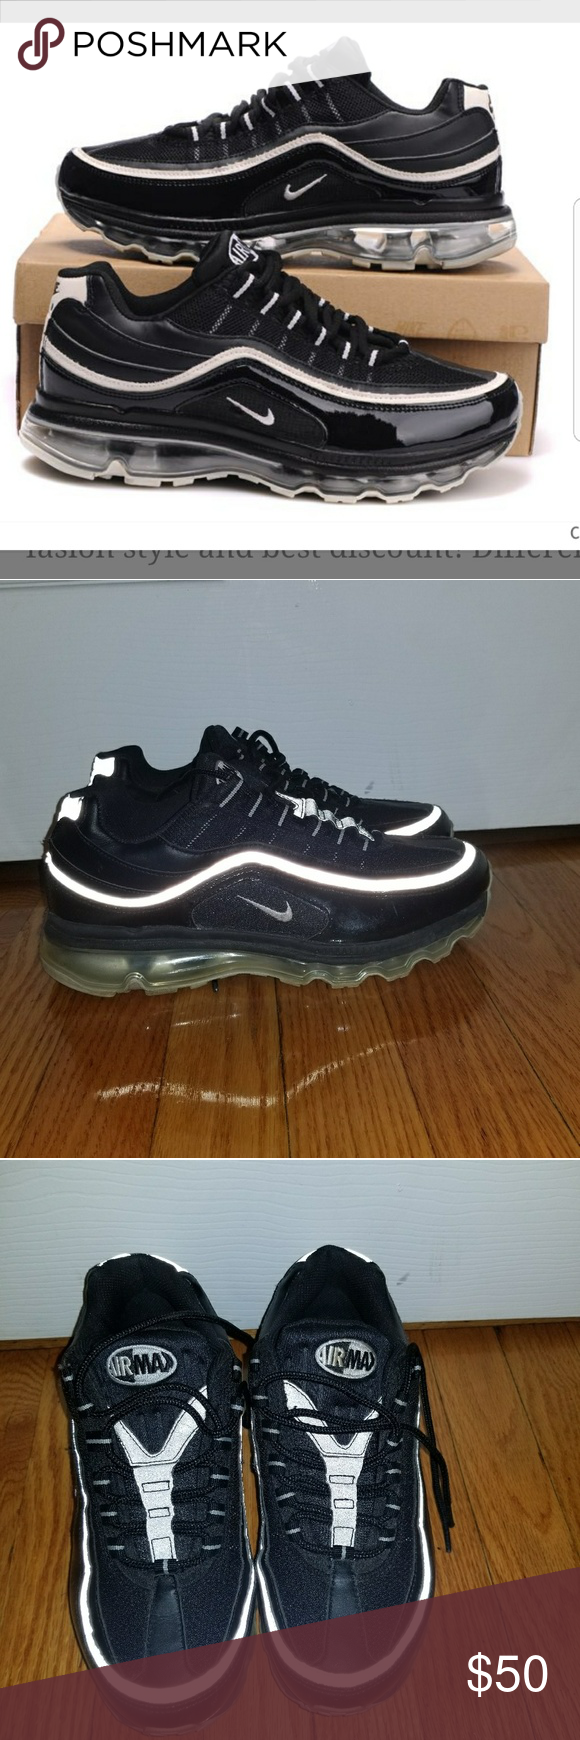 best website db95e 4a6fc Nike Air Max 97 Good Condition Nice pair of throwback Nike ...